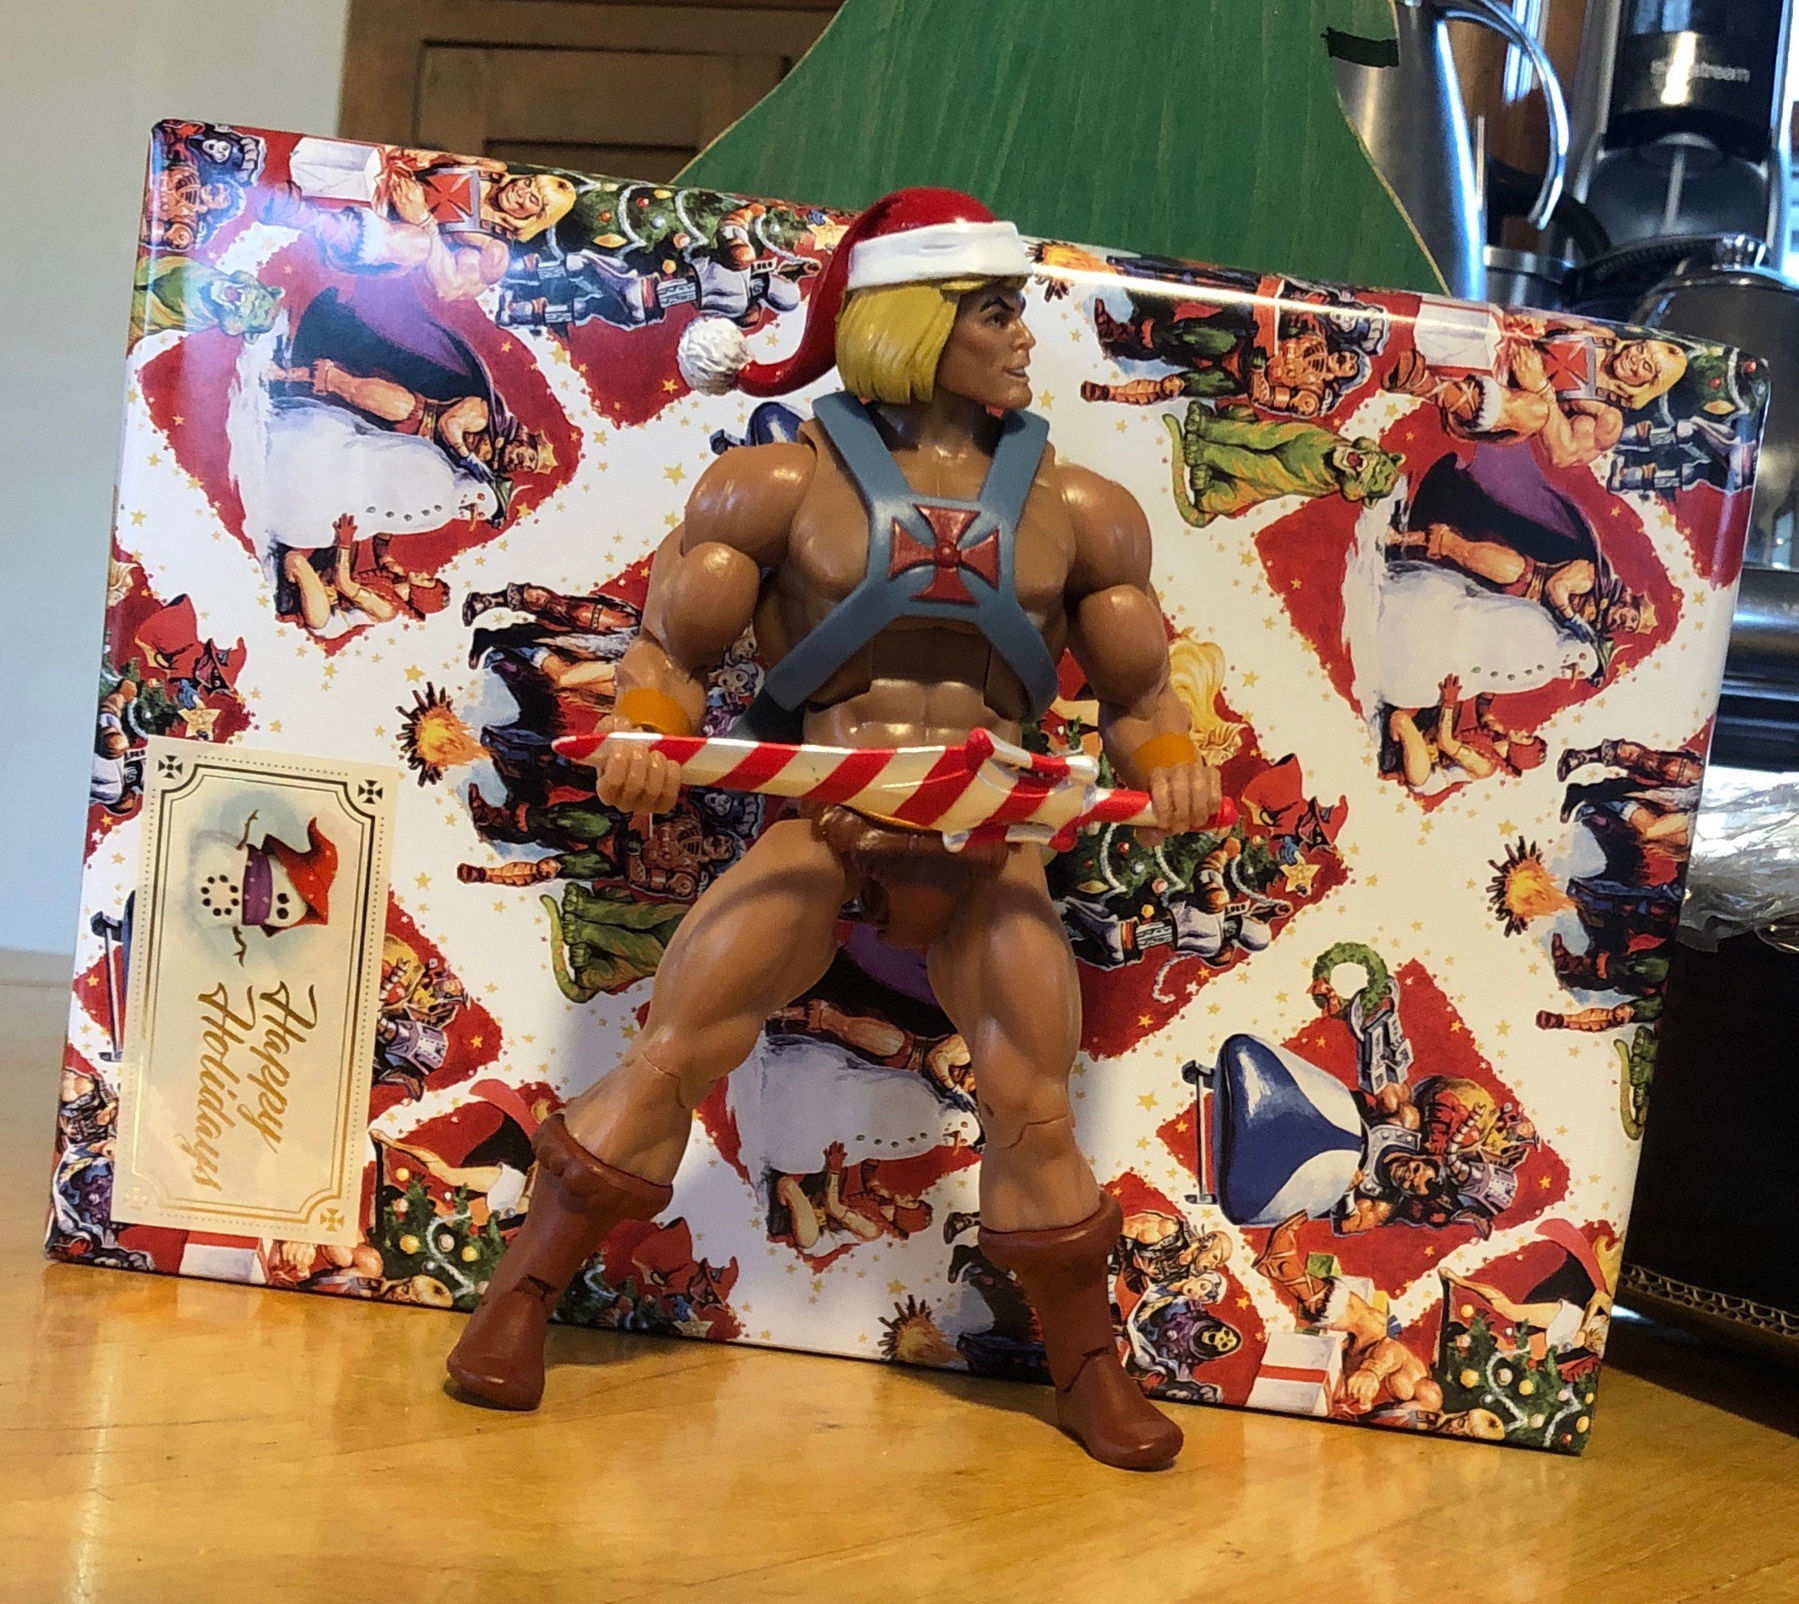 He-Man action figure wearing a Santa hat and holding a candy cane sword in his iconic stance. Behind him is a package wrapped in Masters of the Universe wrapping paper.